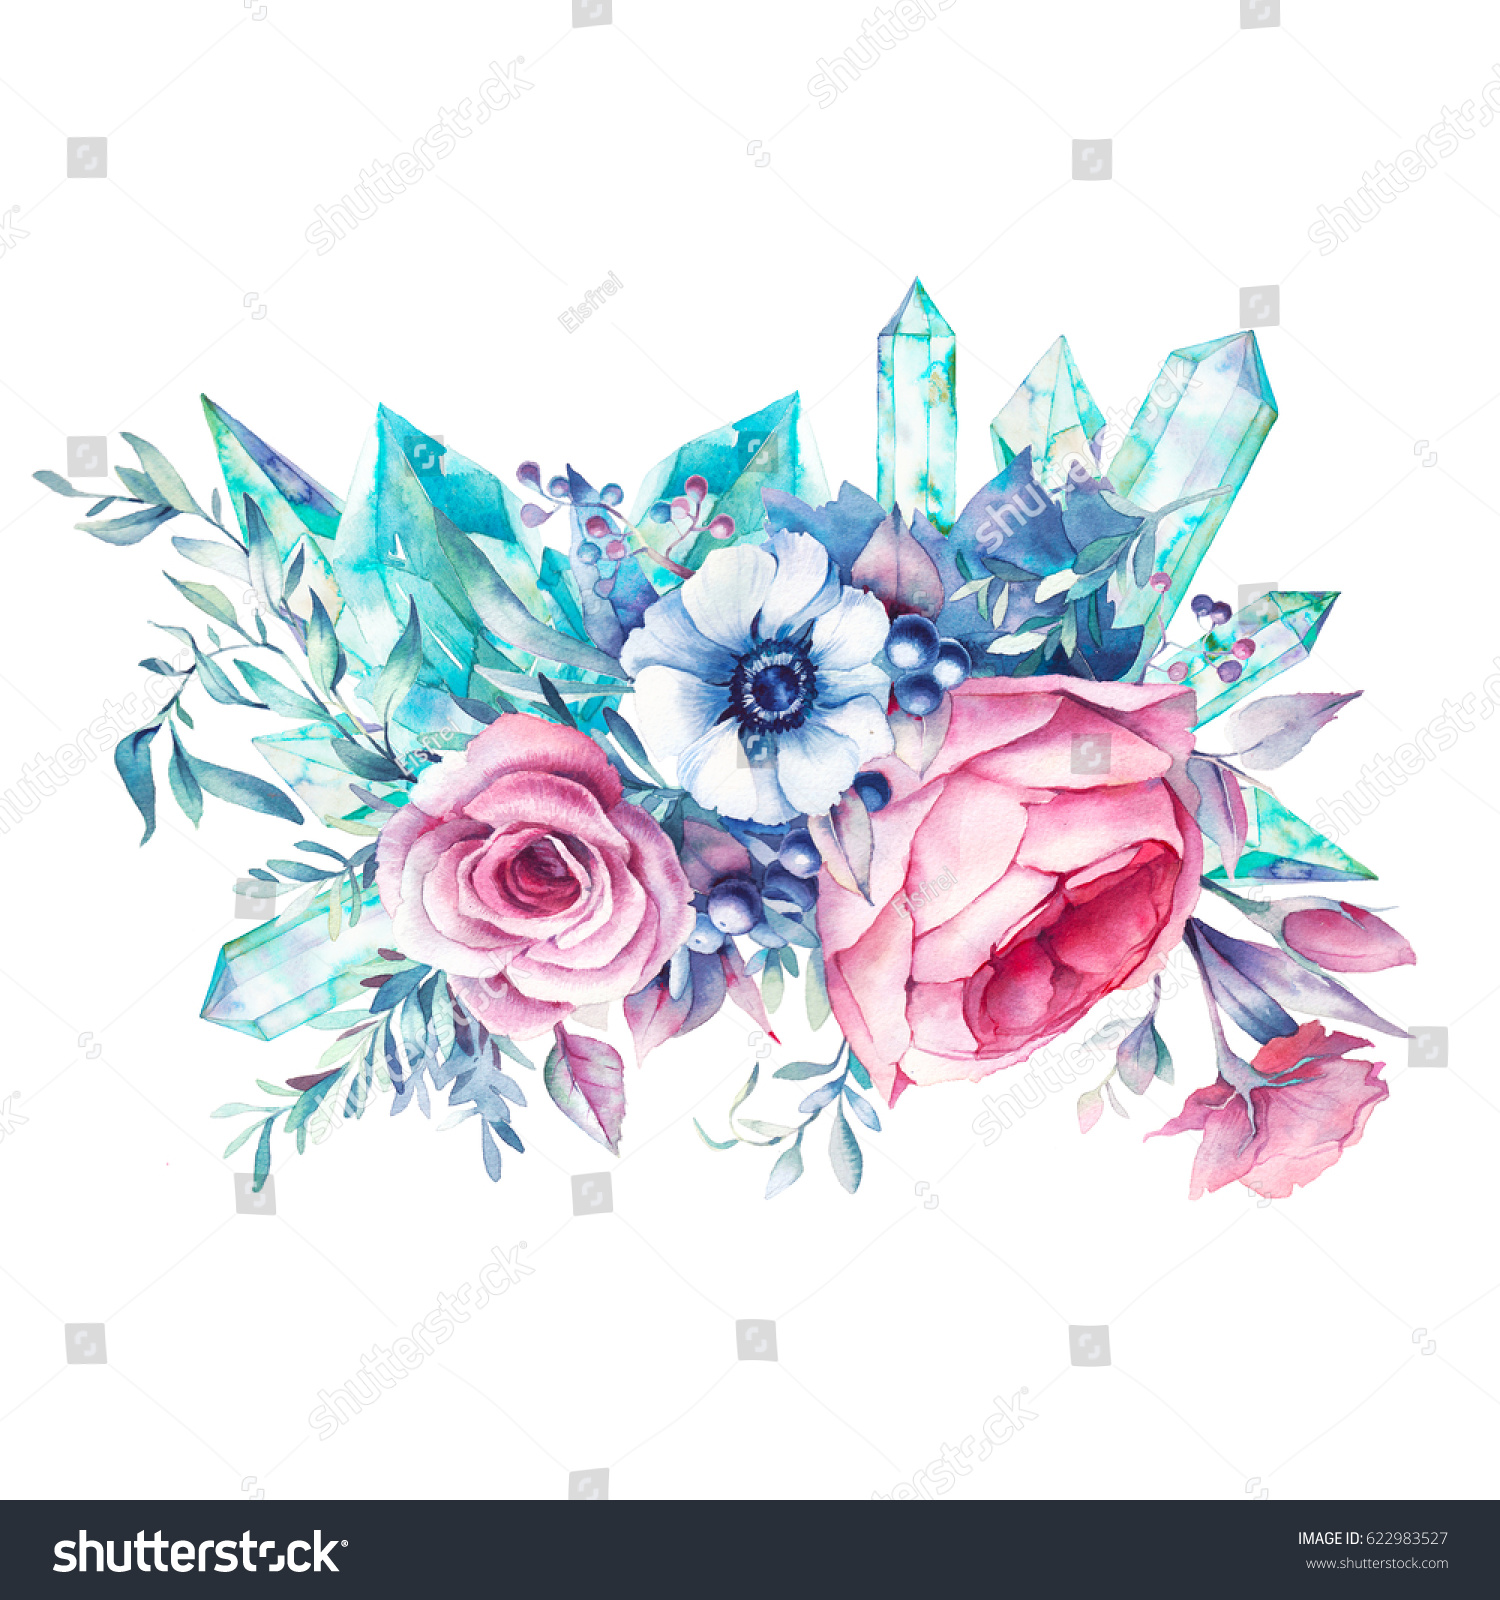 Watercolor Bouquet Flowers Gemstones Hand Painted Stock Illustration